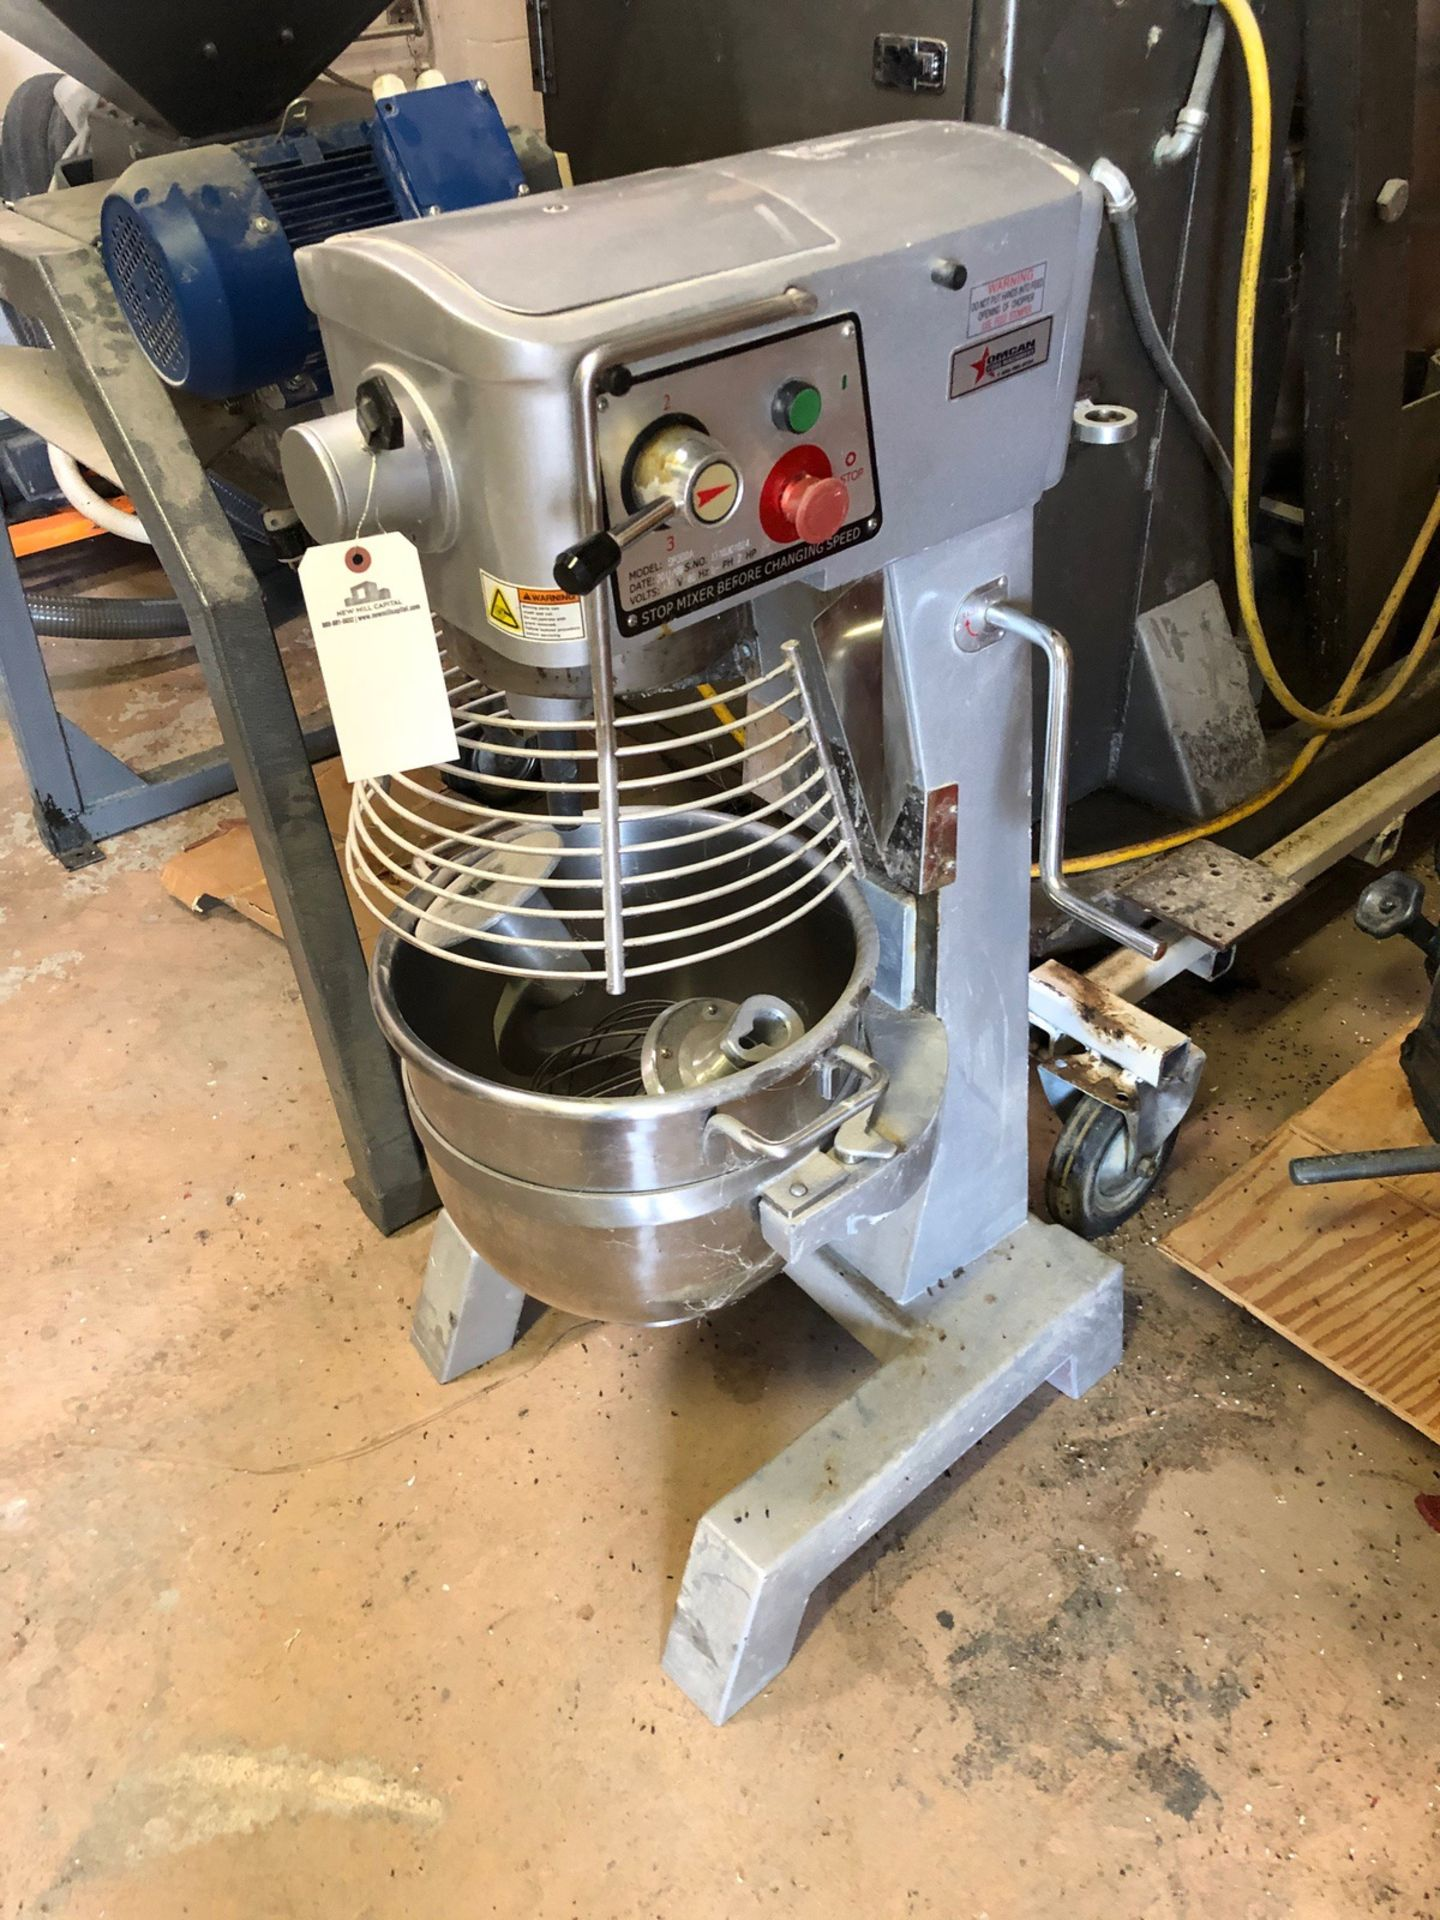 Lot 84 - OmCan Food Machinery Mixer | Rig Fee: $75